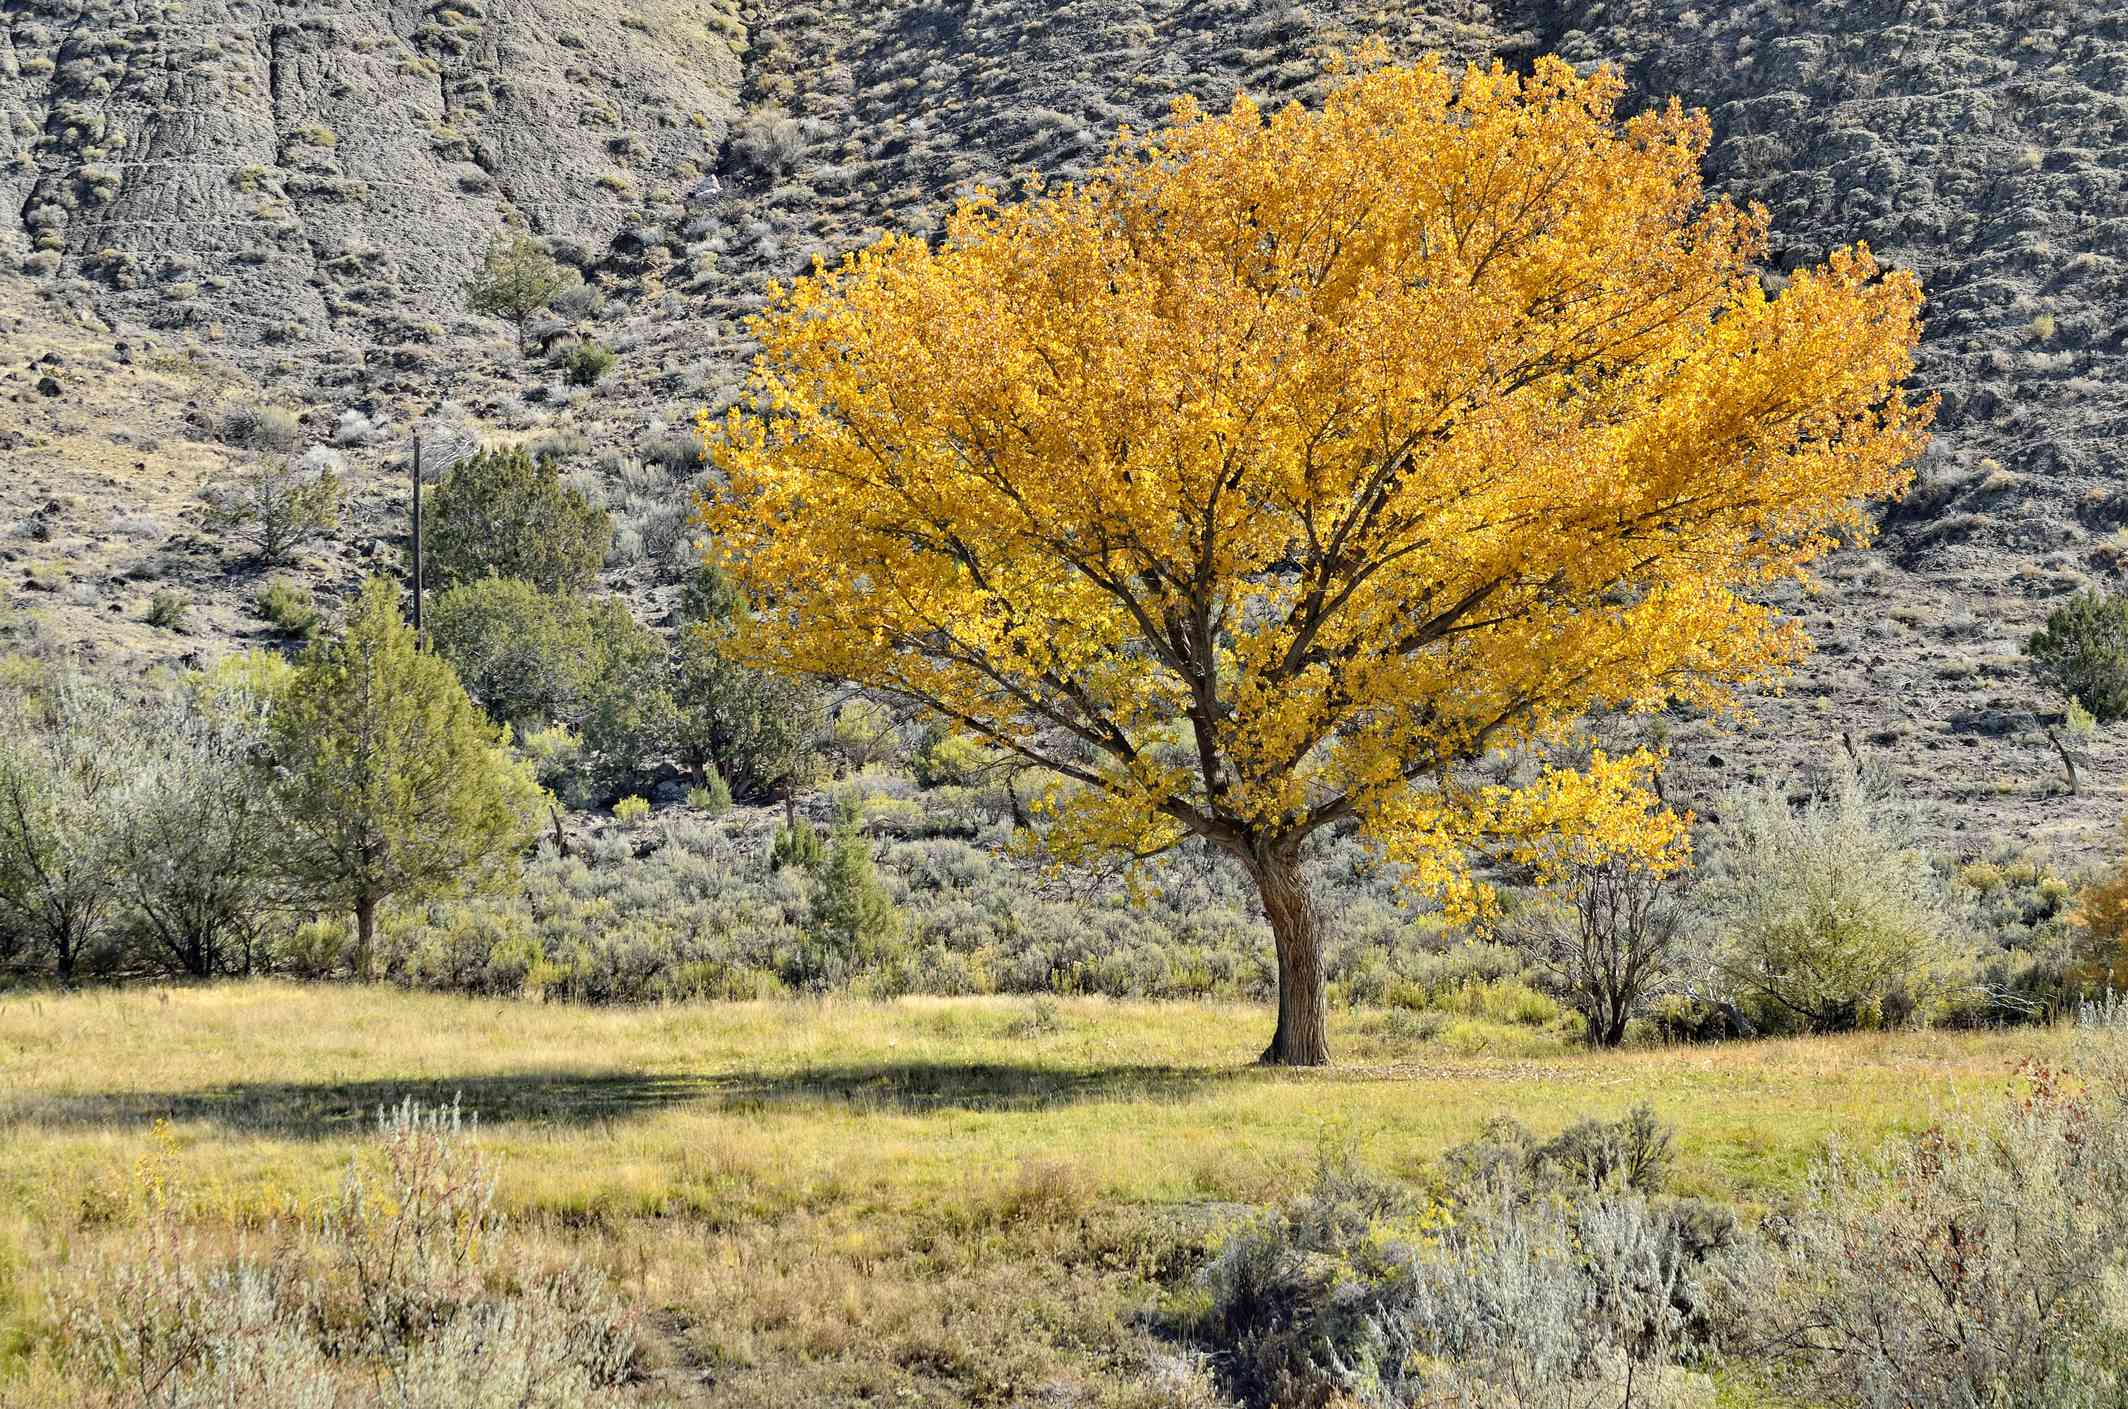 Fremont cottonwood in Adobe Buttes in Autumn